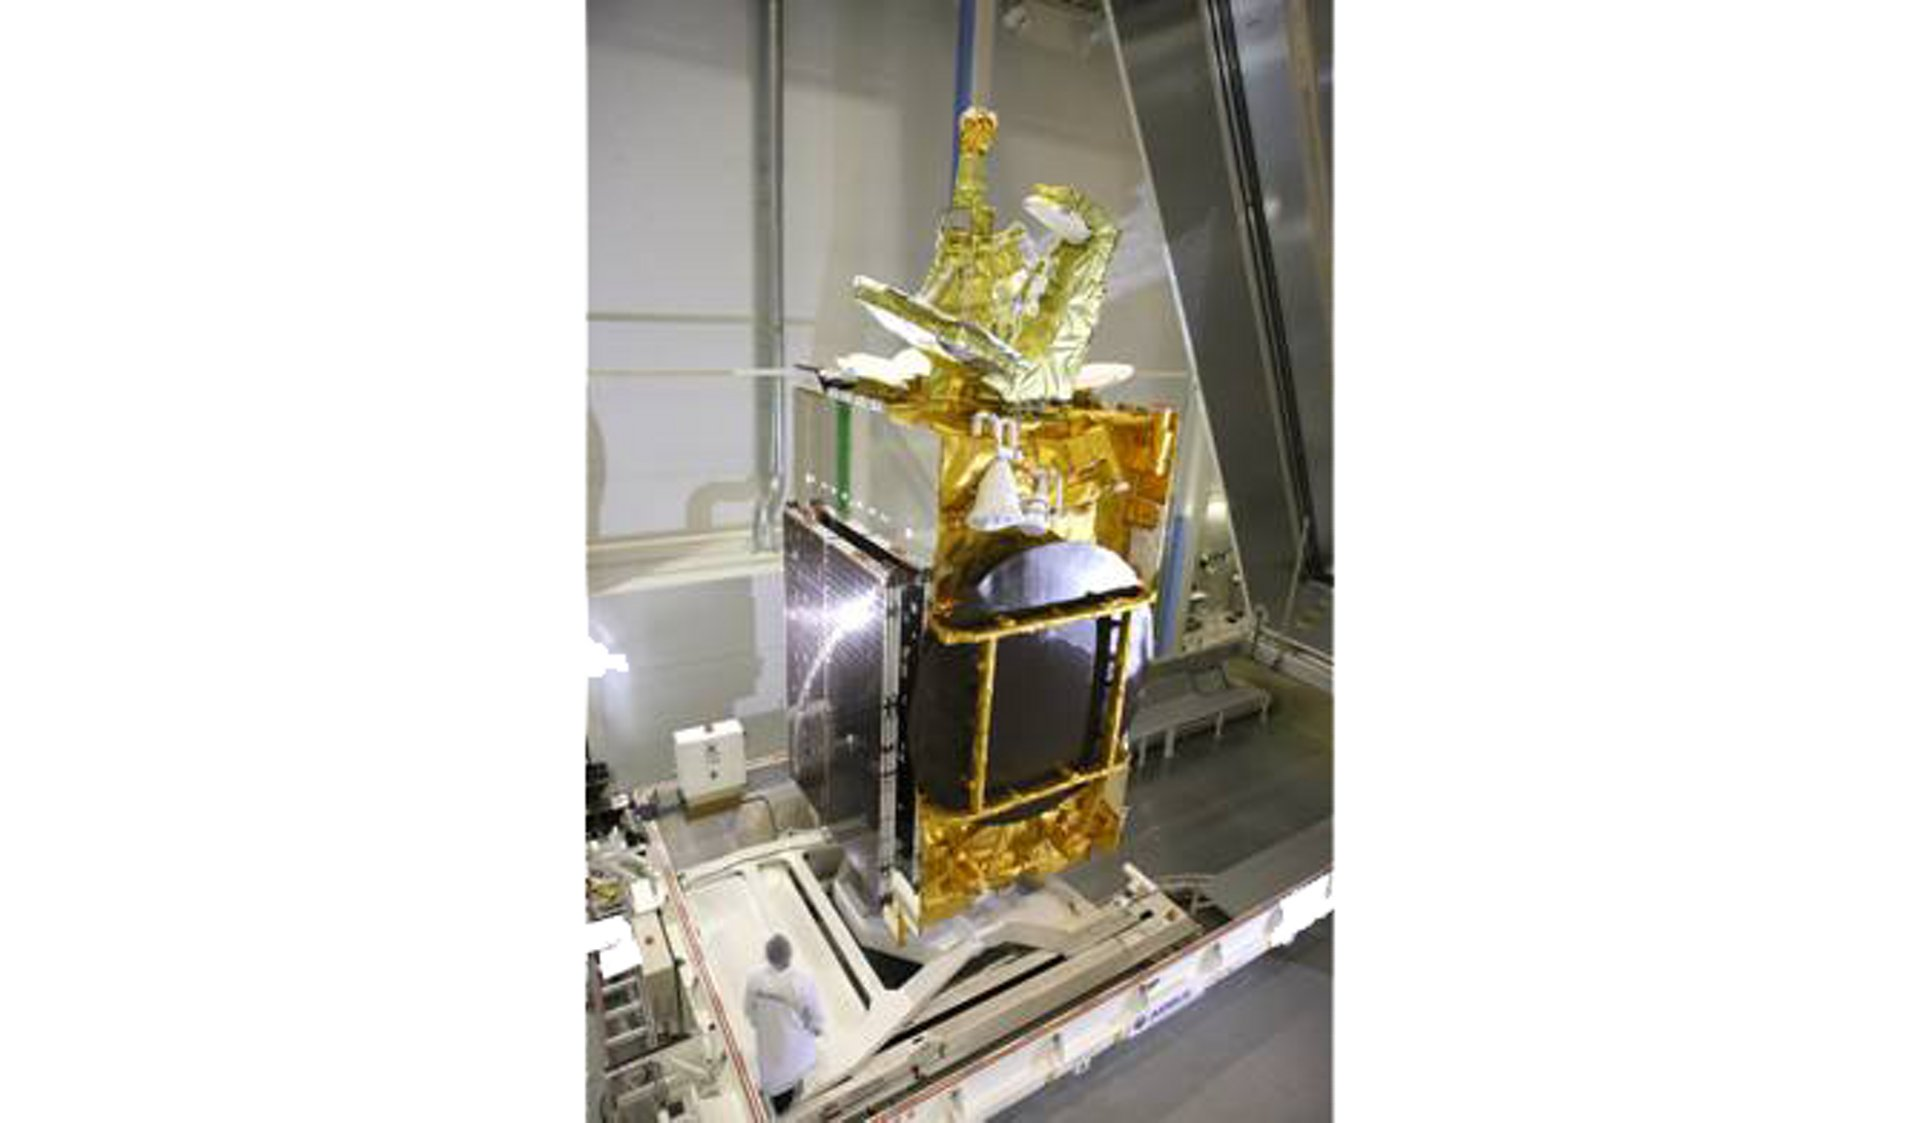 Eutelsat 3B satellite, built by Airbus, ready to be transported for launch